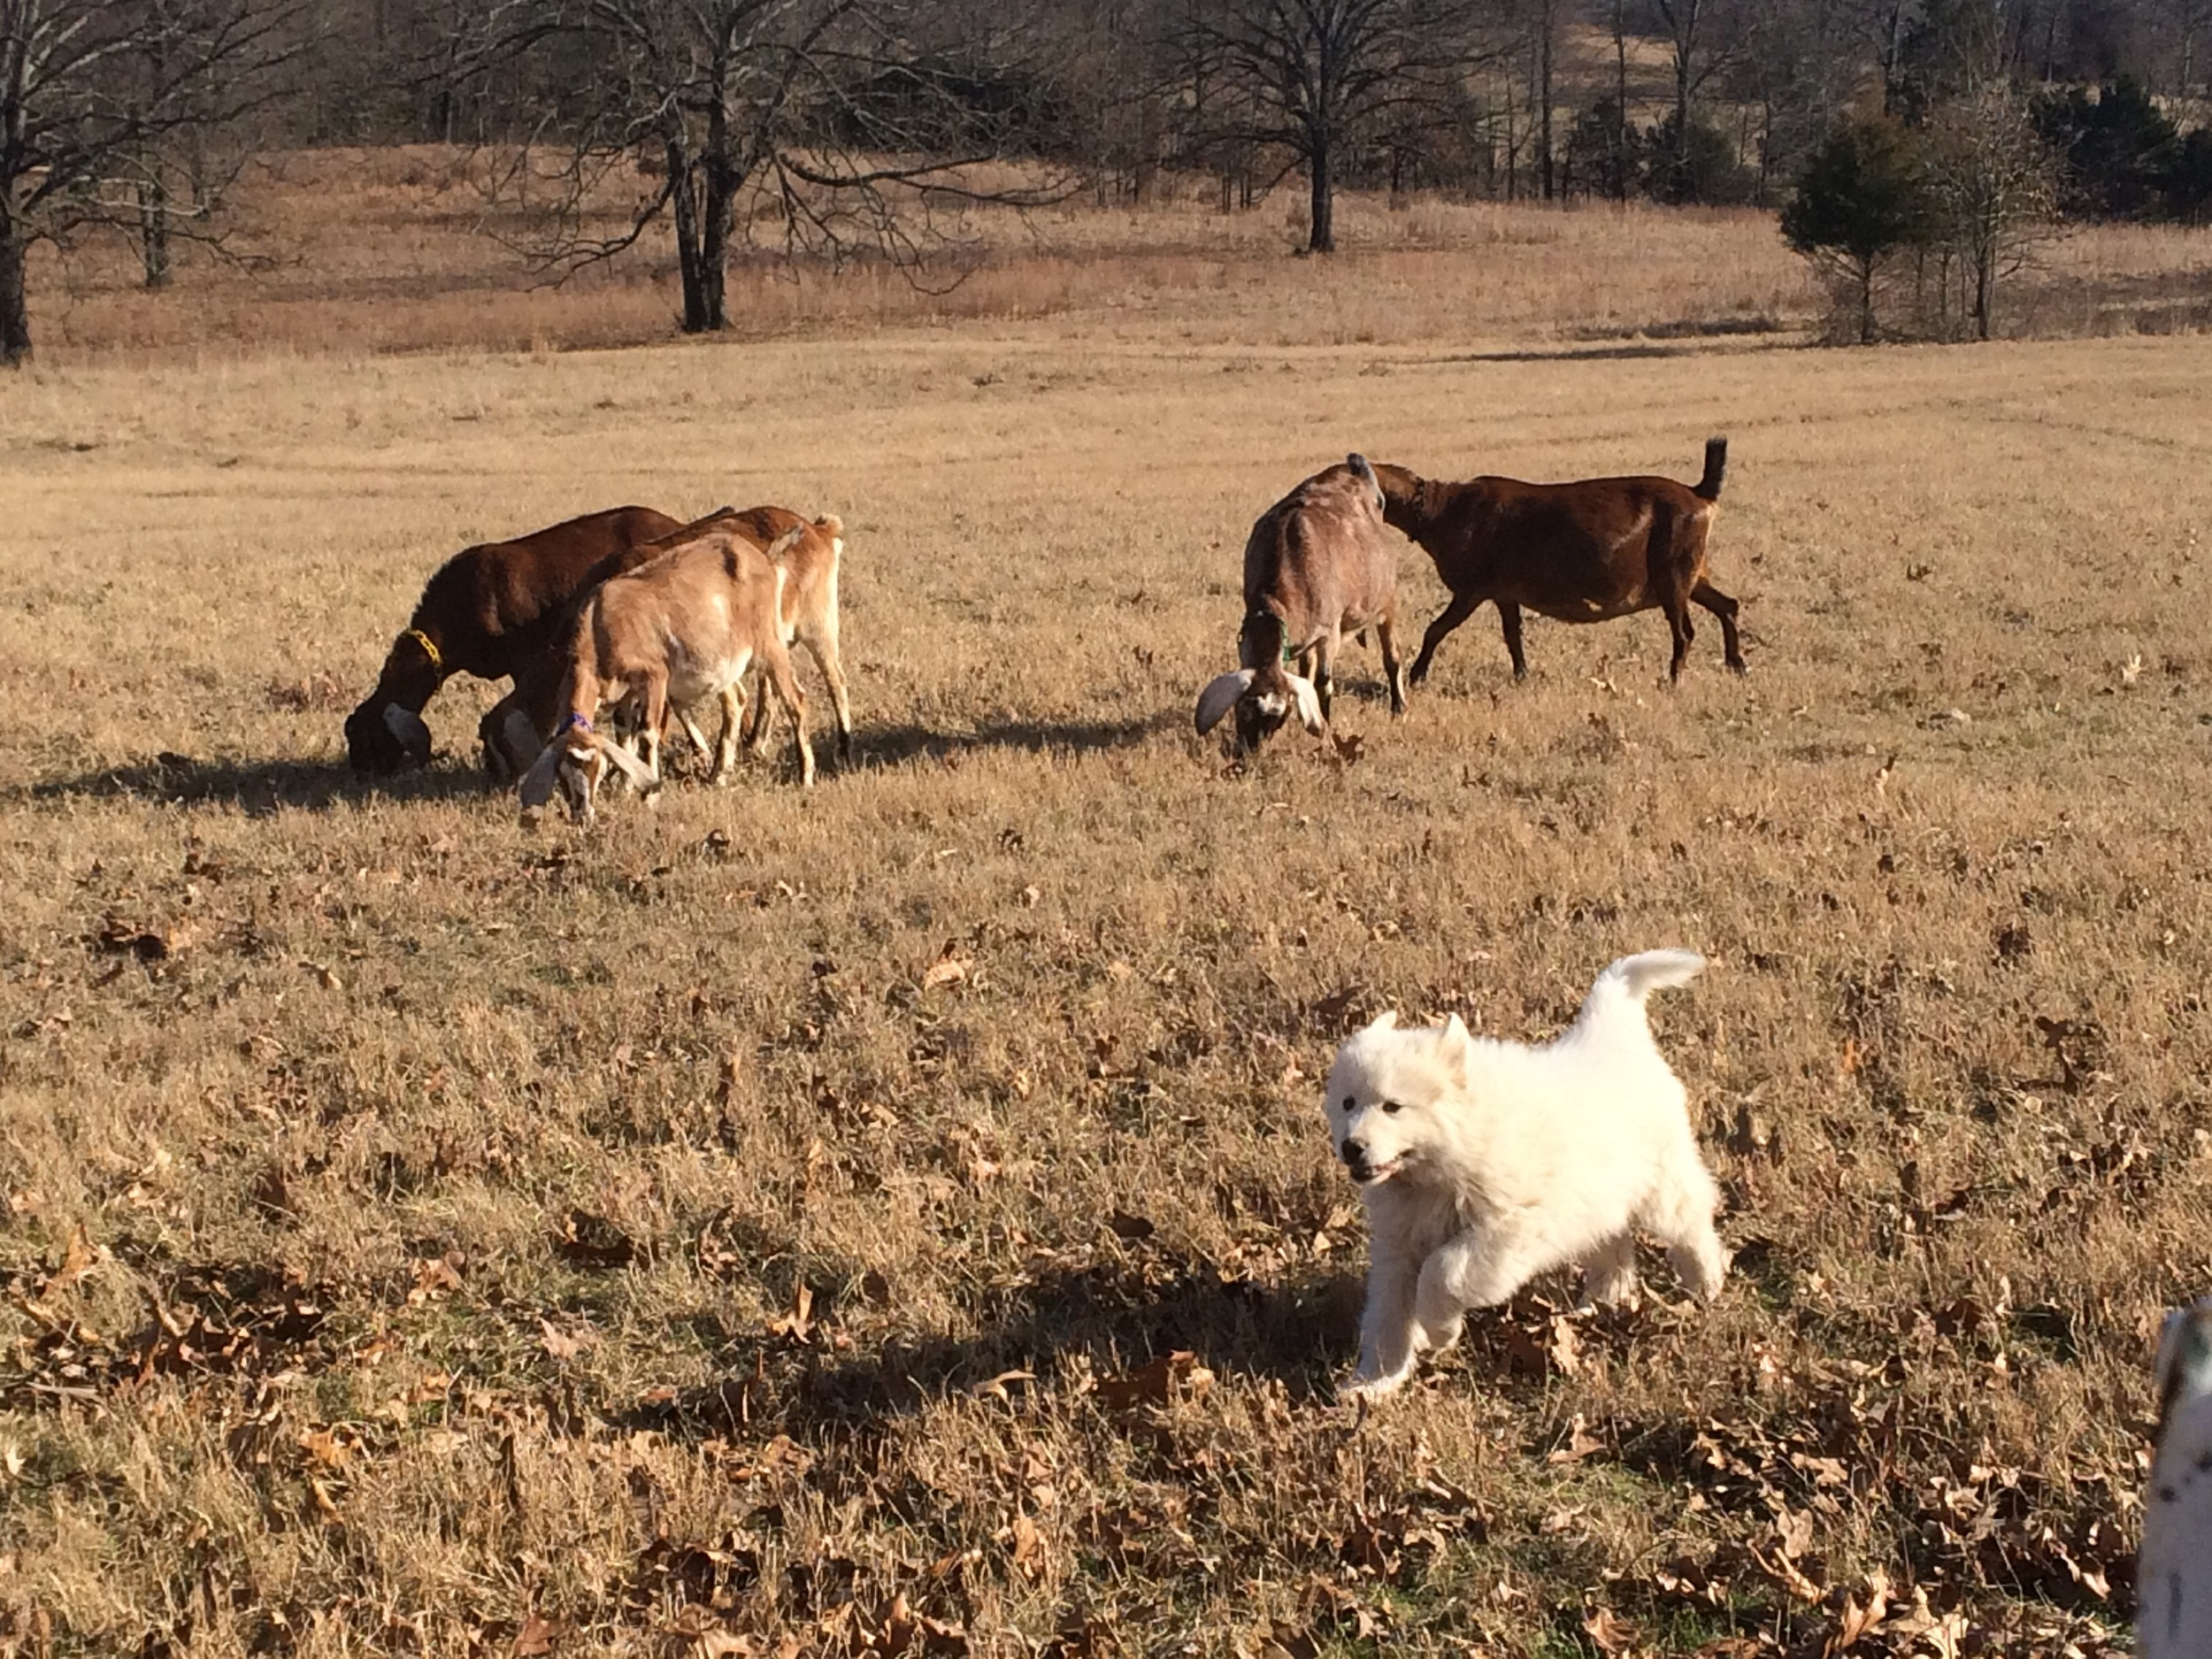 This pic was taken Thursday. Star is the lighter-colored goat on the left side of the pic. She was eating well and had rejoined the herd.